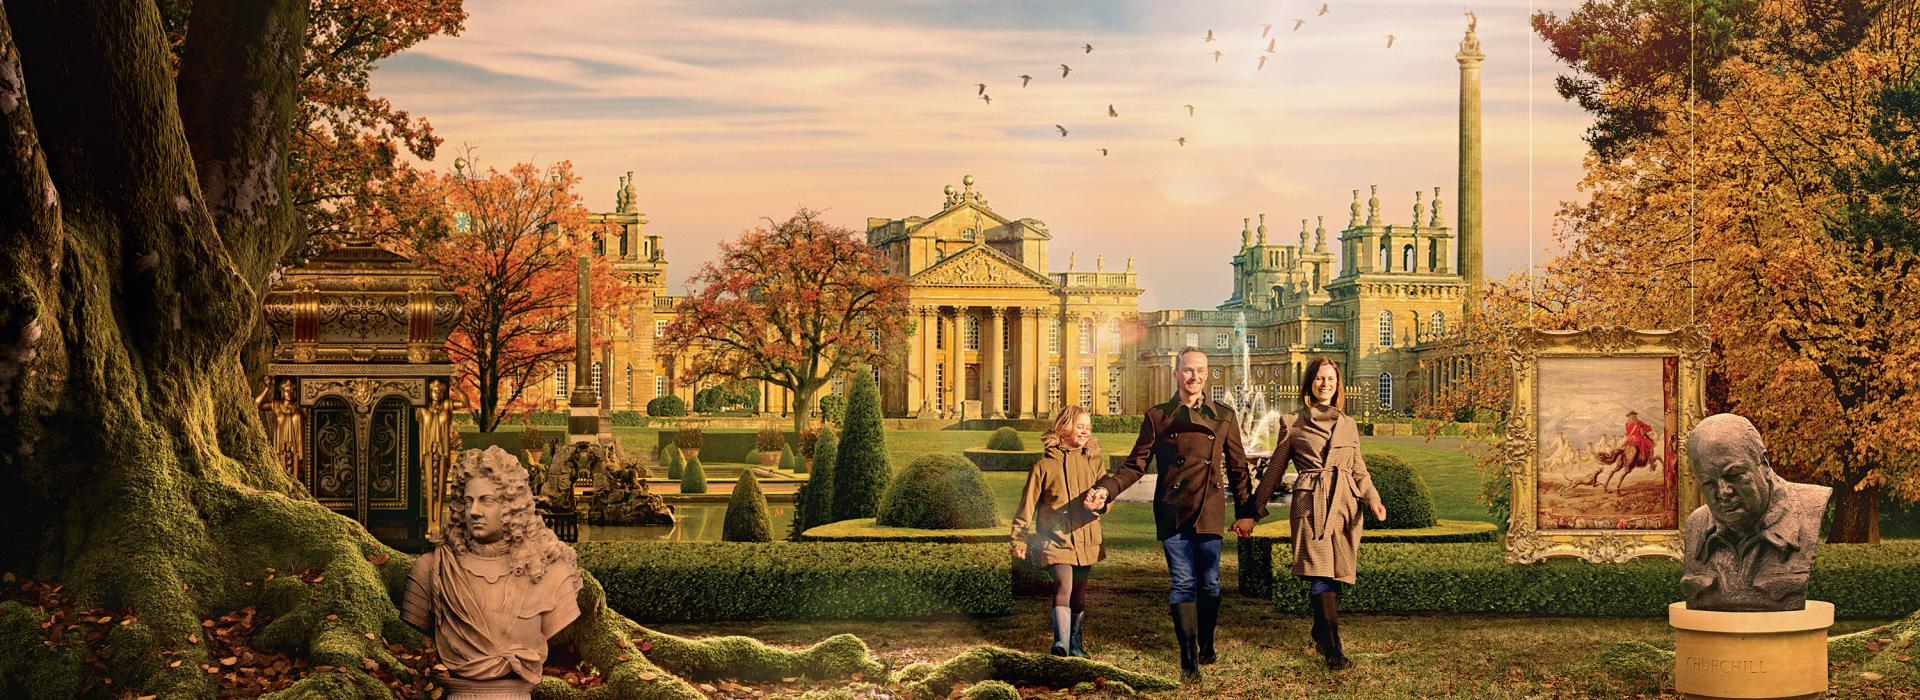 Autumn Days at Britain's Greatest Palace